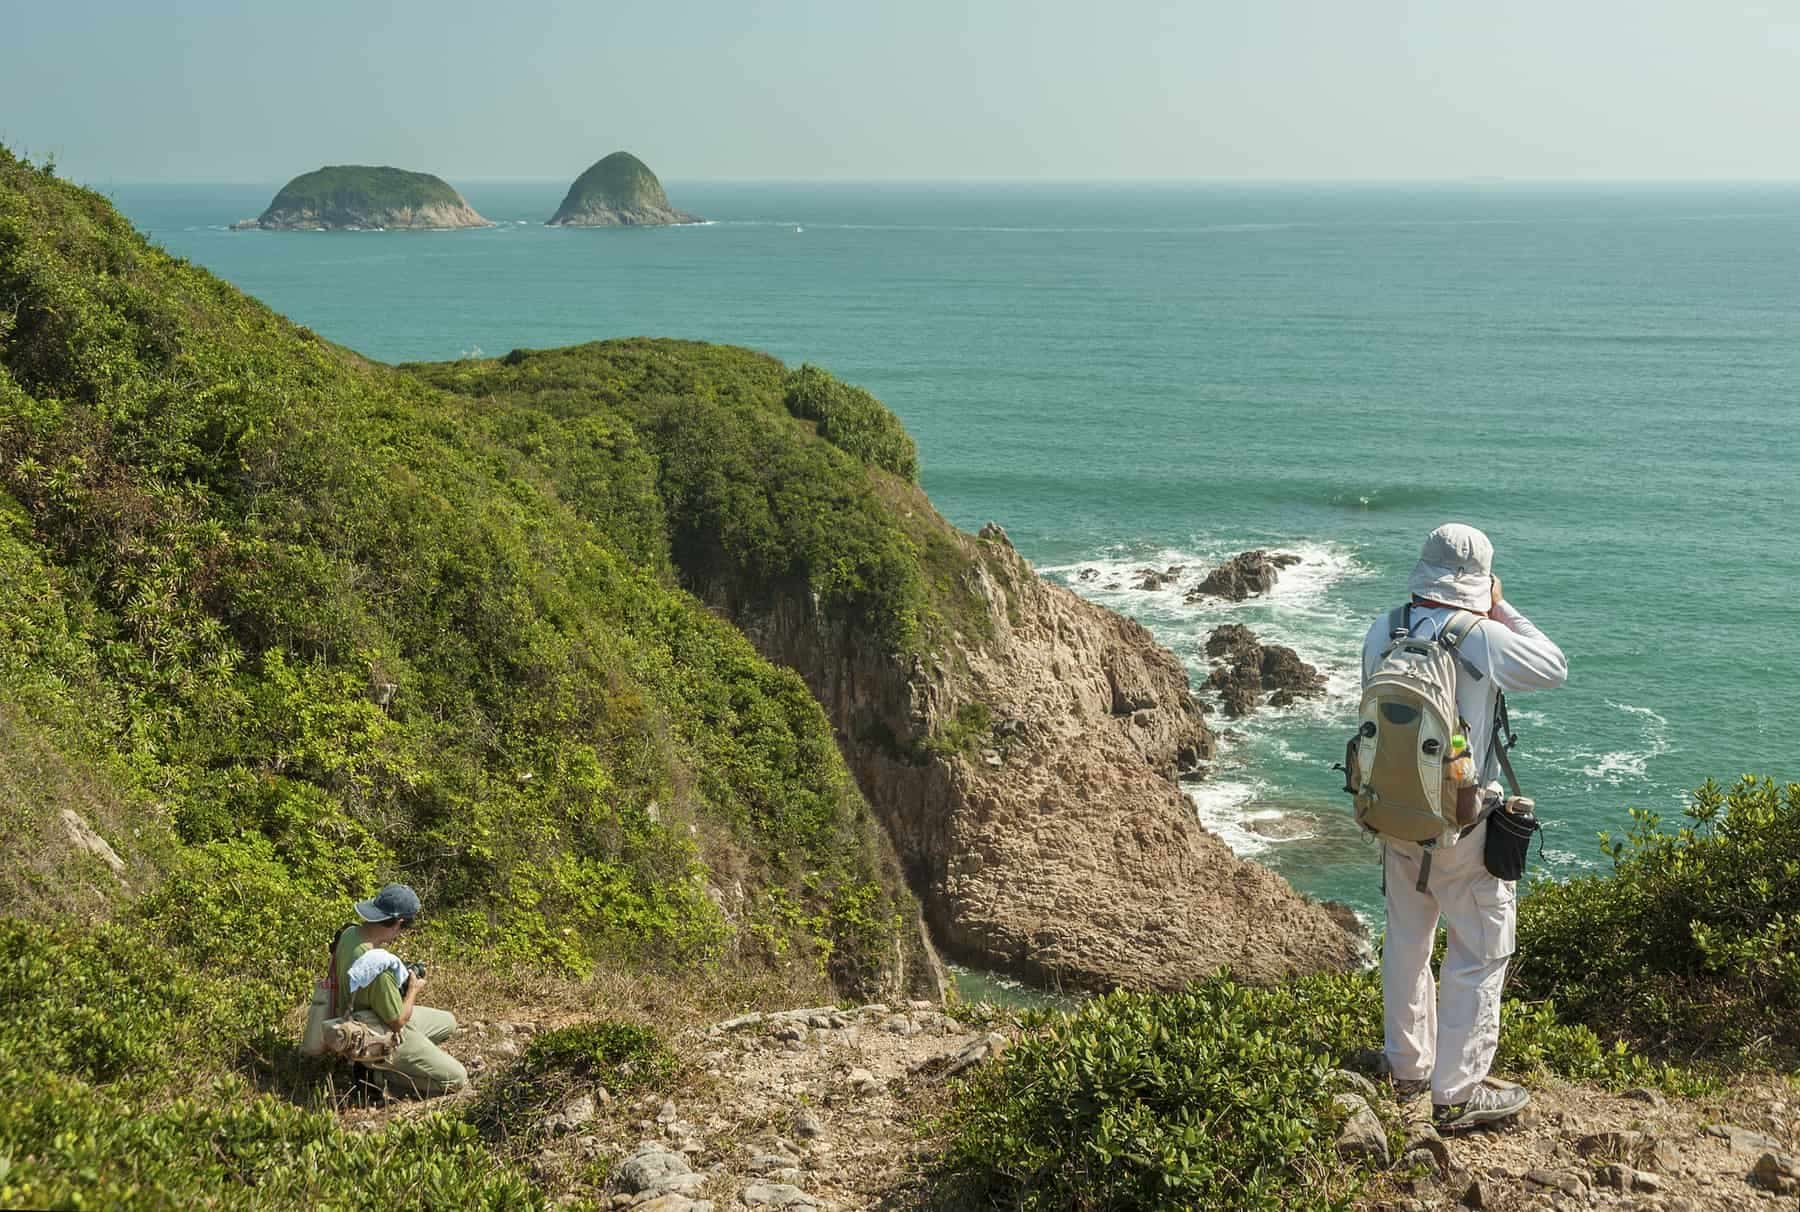 Tourist taking photo in Hong Kong global geopark of china. Sai Kung District, New Territories.